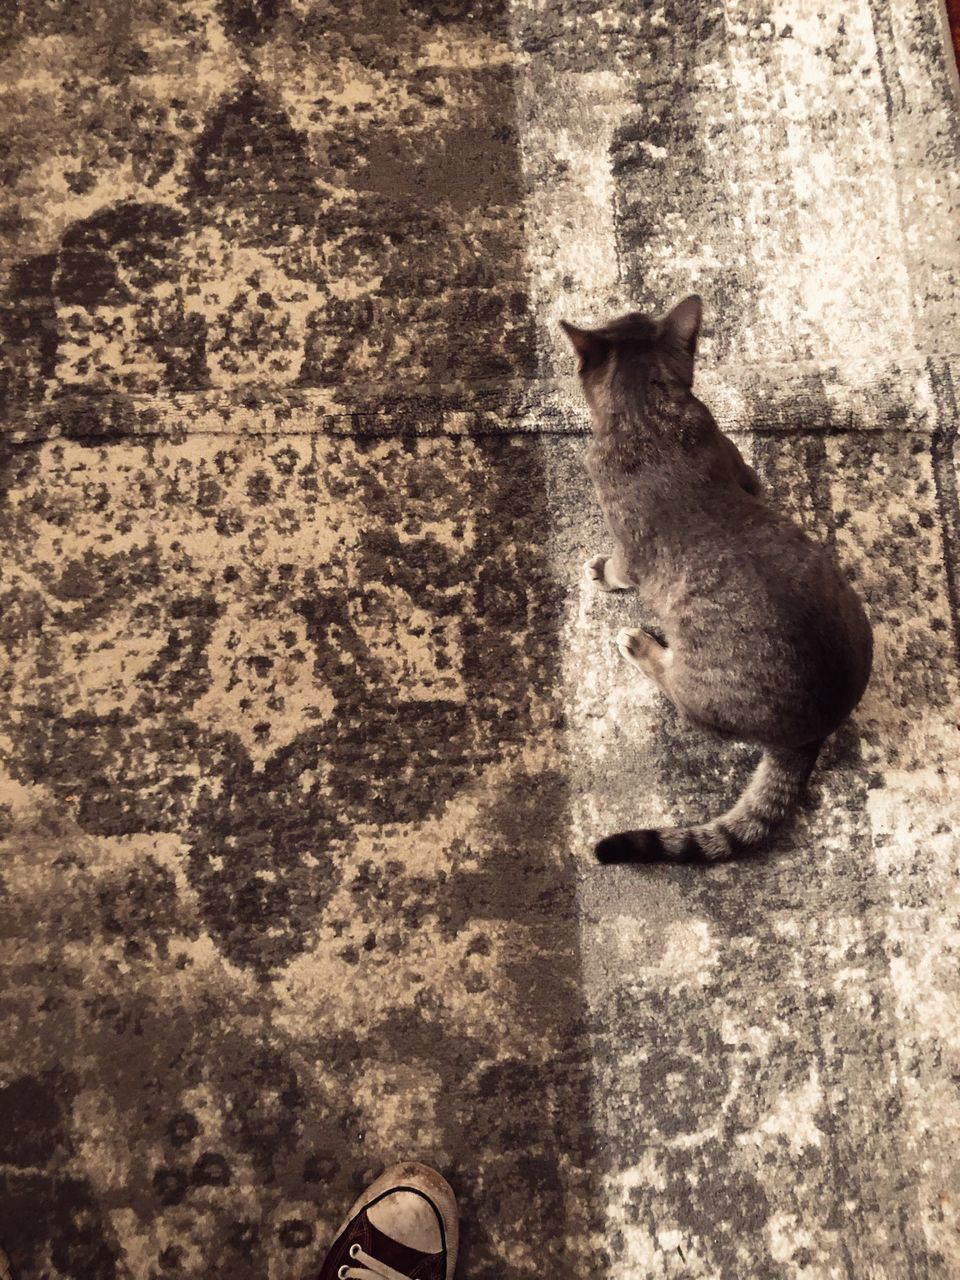 HIGH ANGLE VIEW OF CAT SITTING ON CITY STREET